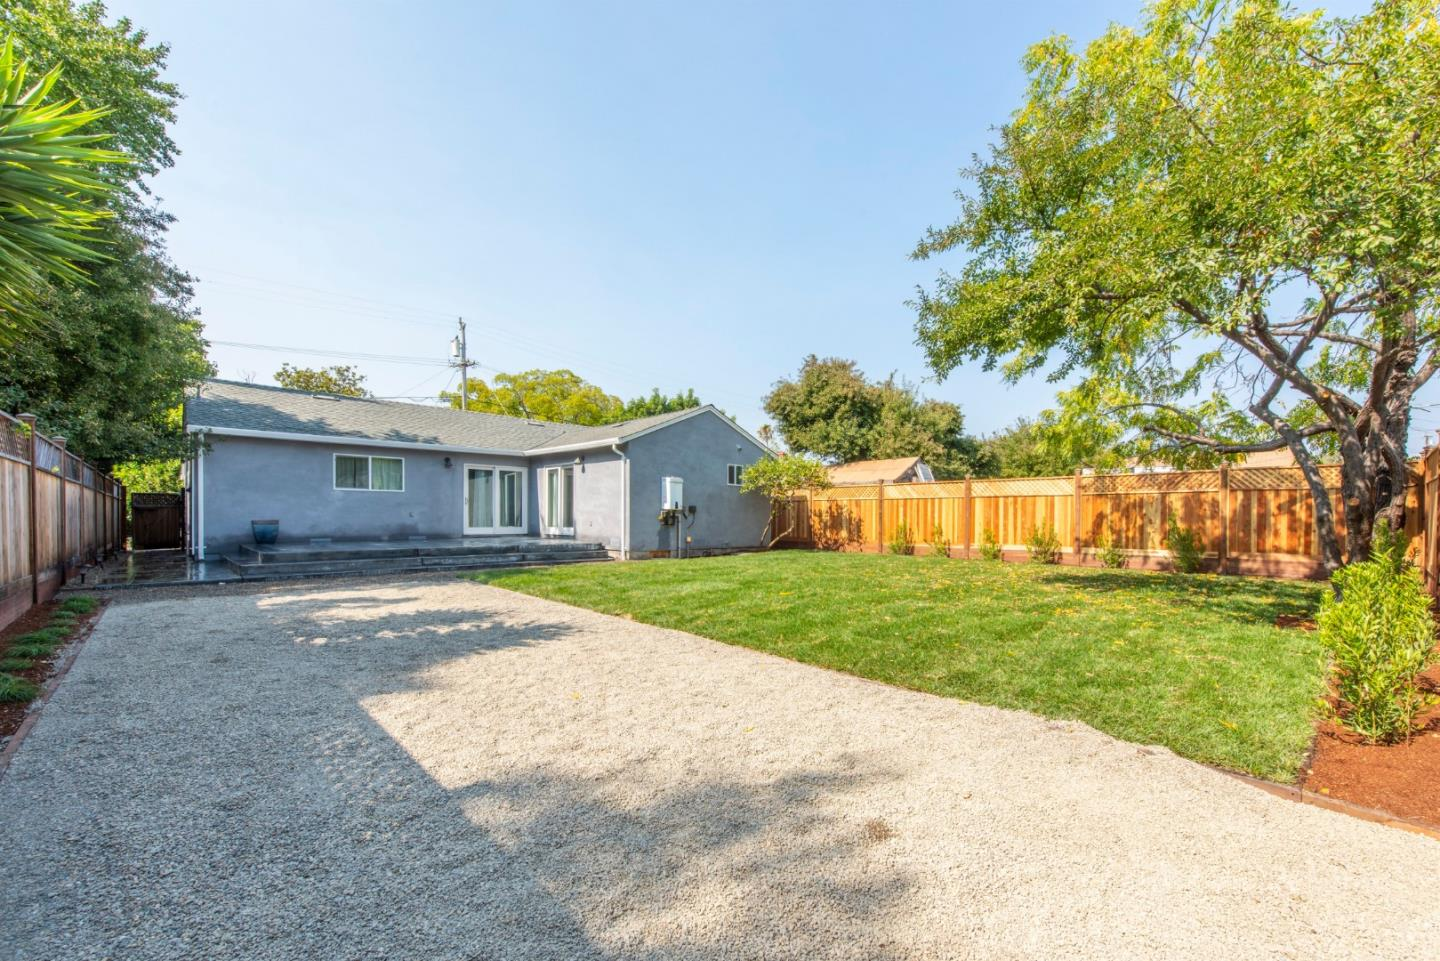 3071 Page Street Redwood City, CA 94063 - MLS #: ML81722591